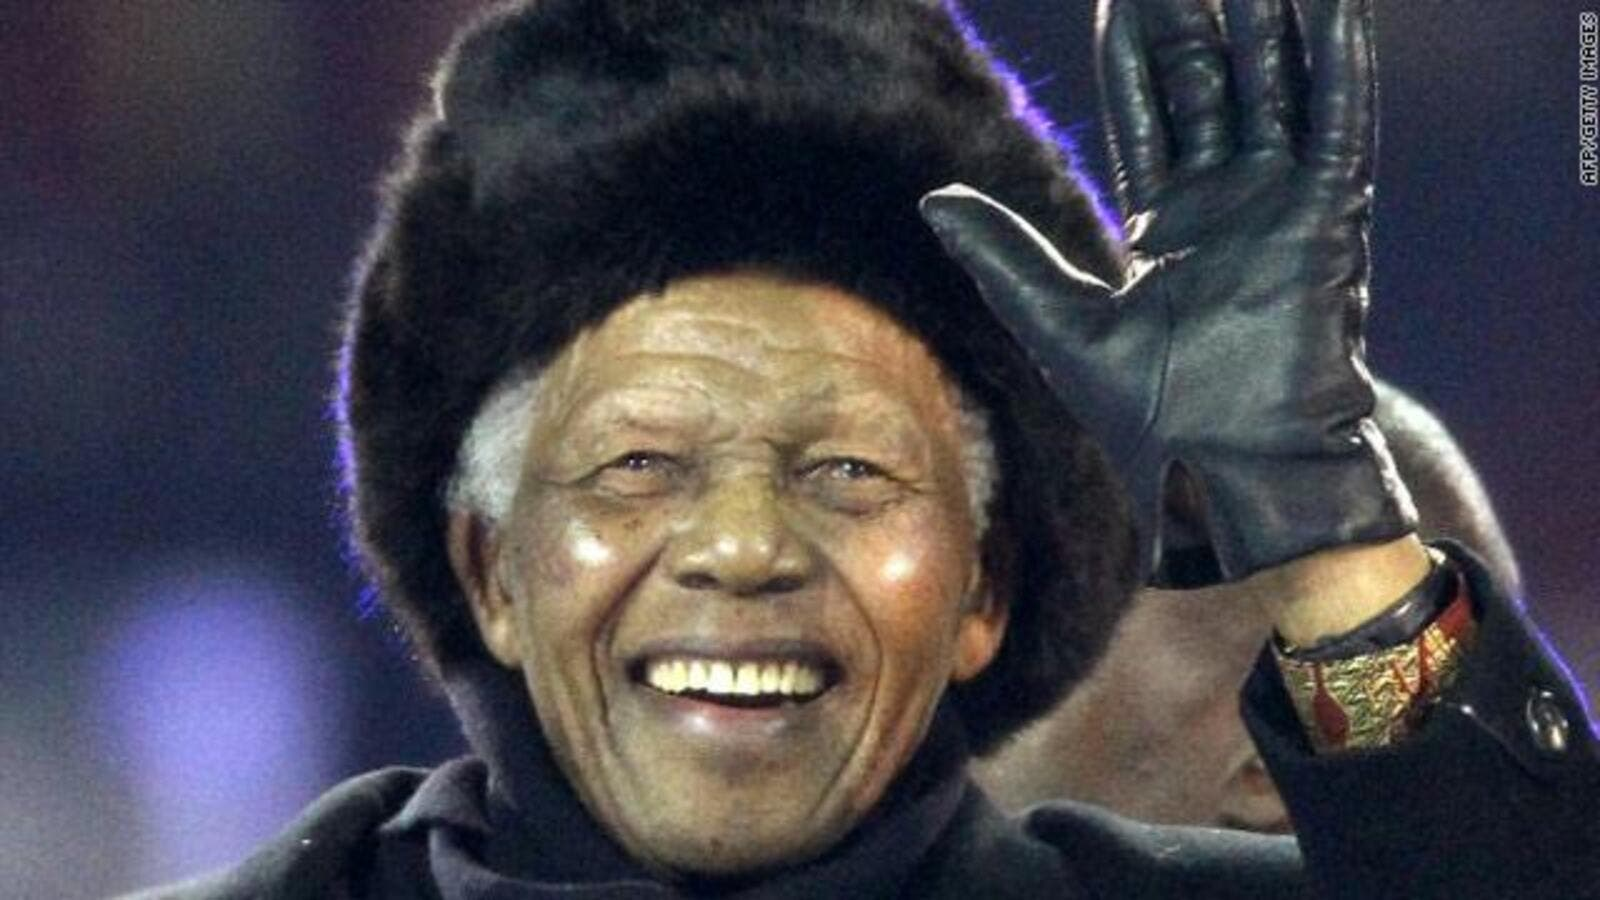 Arabs say farewell to an ally and a hero, Nelson Mandela.